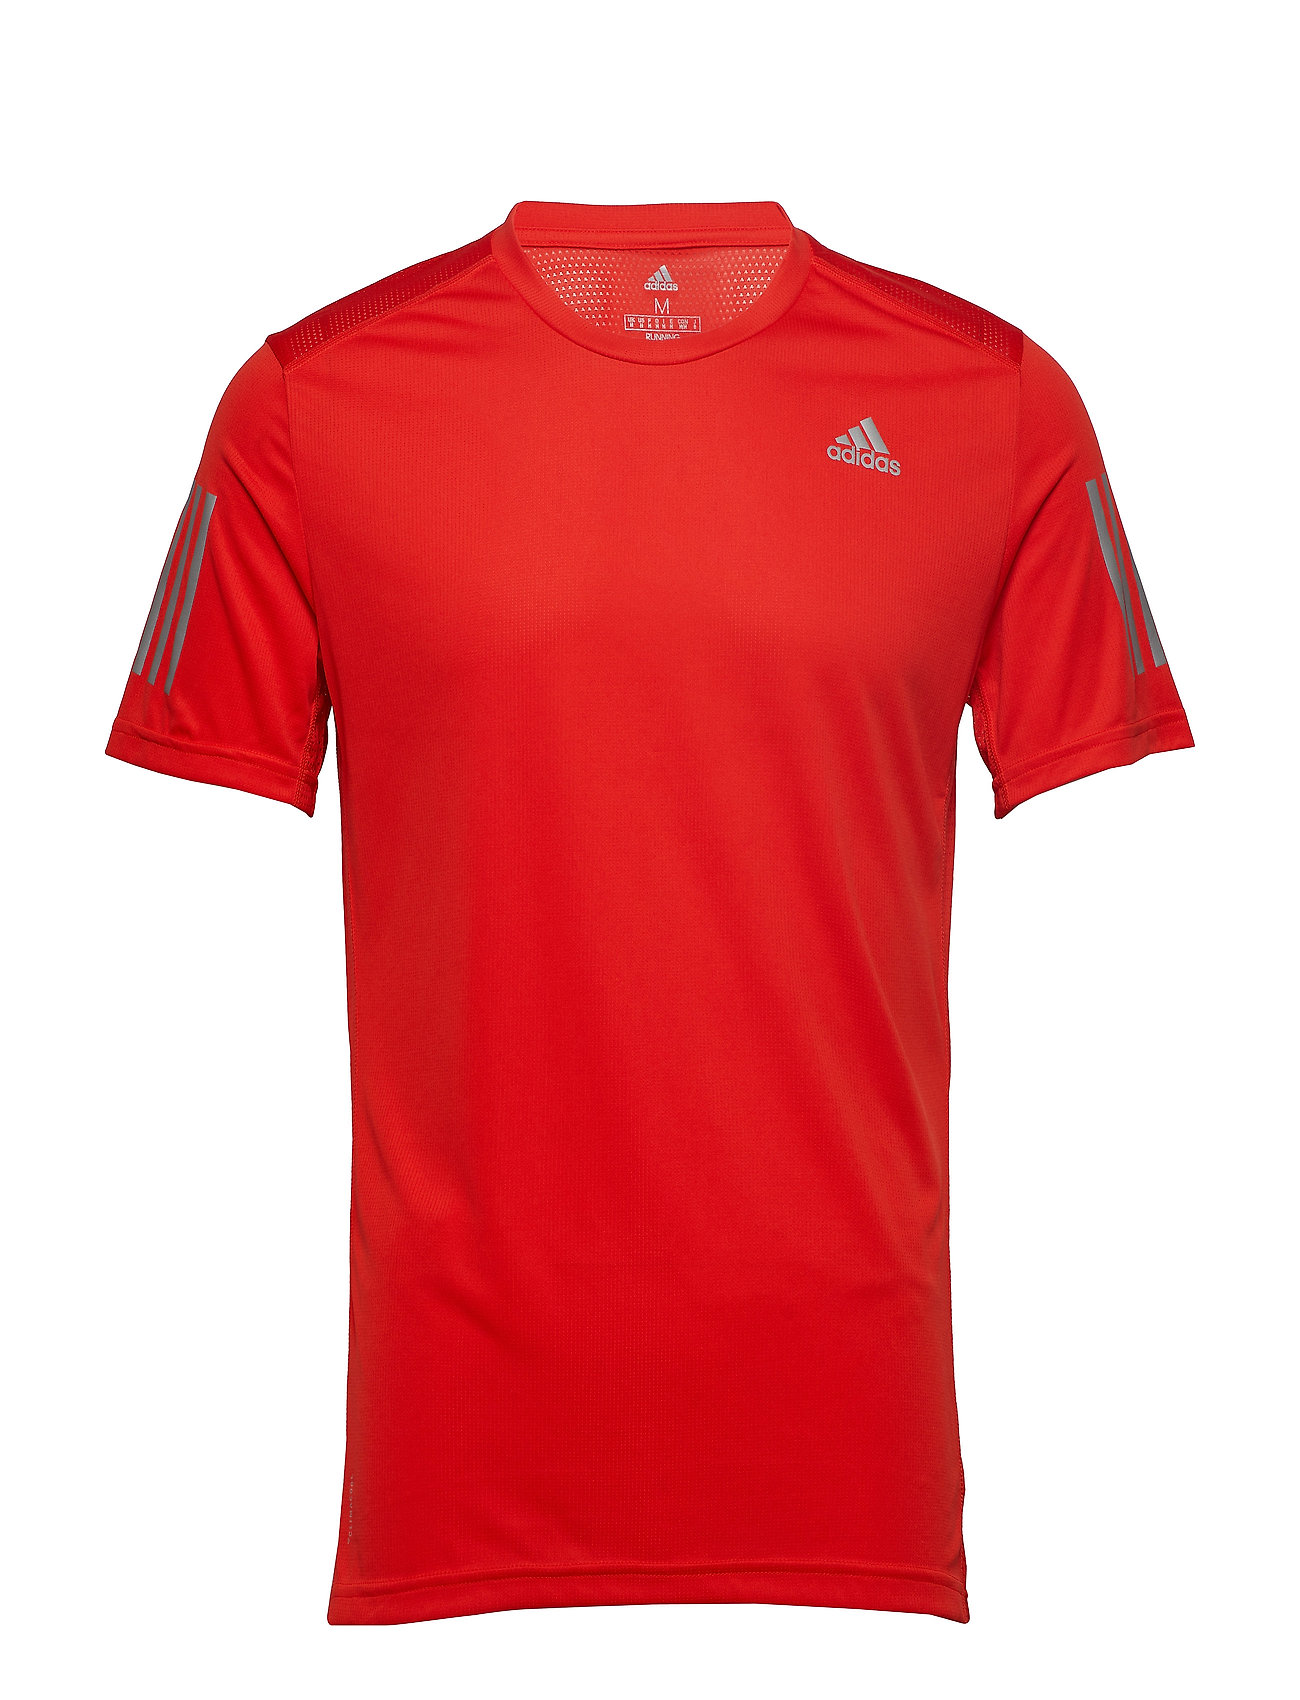 adidas Performance OWN THE RUN TEE - ACTRED/REFSIL